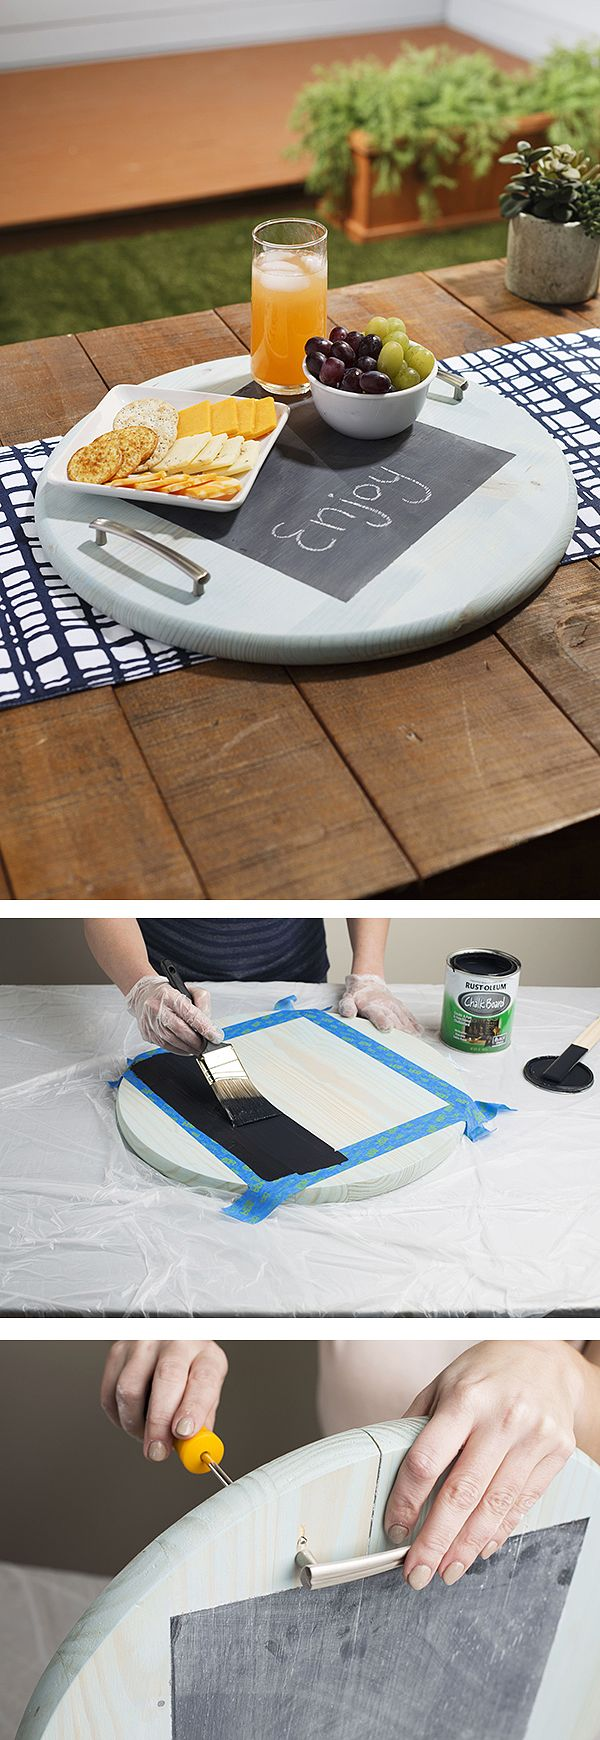 Here's a fun chalkboard paint project. With this chalkboard party tray you can write a party greeting or draw a party-related doodle on it. We have the complete step-by-step tutorial on The Home Depot Blog.